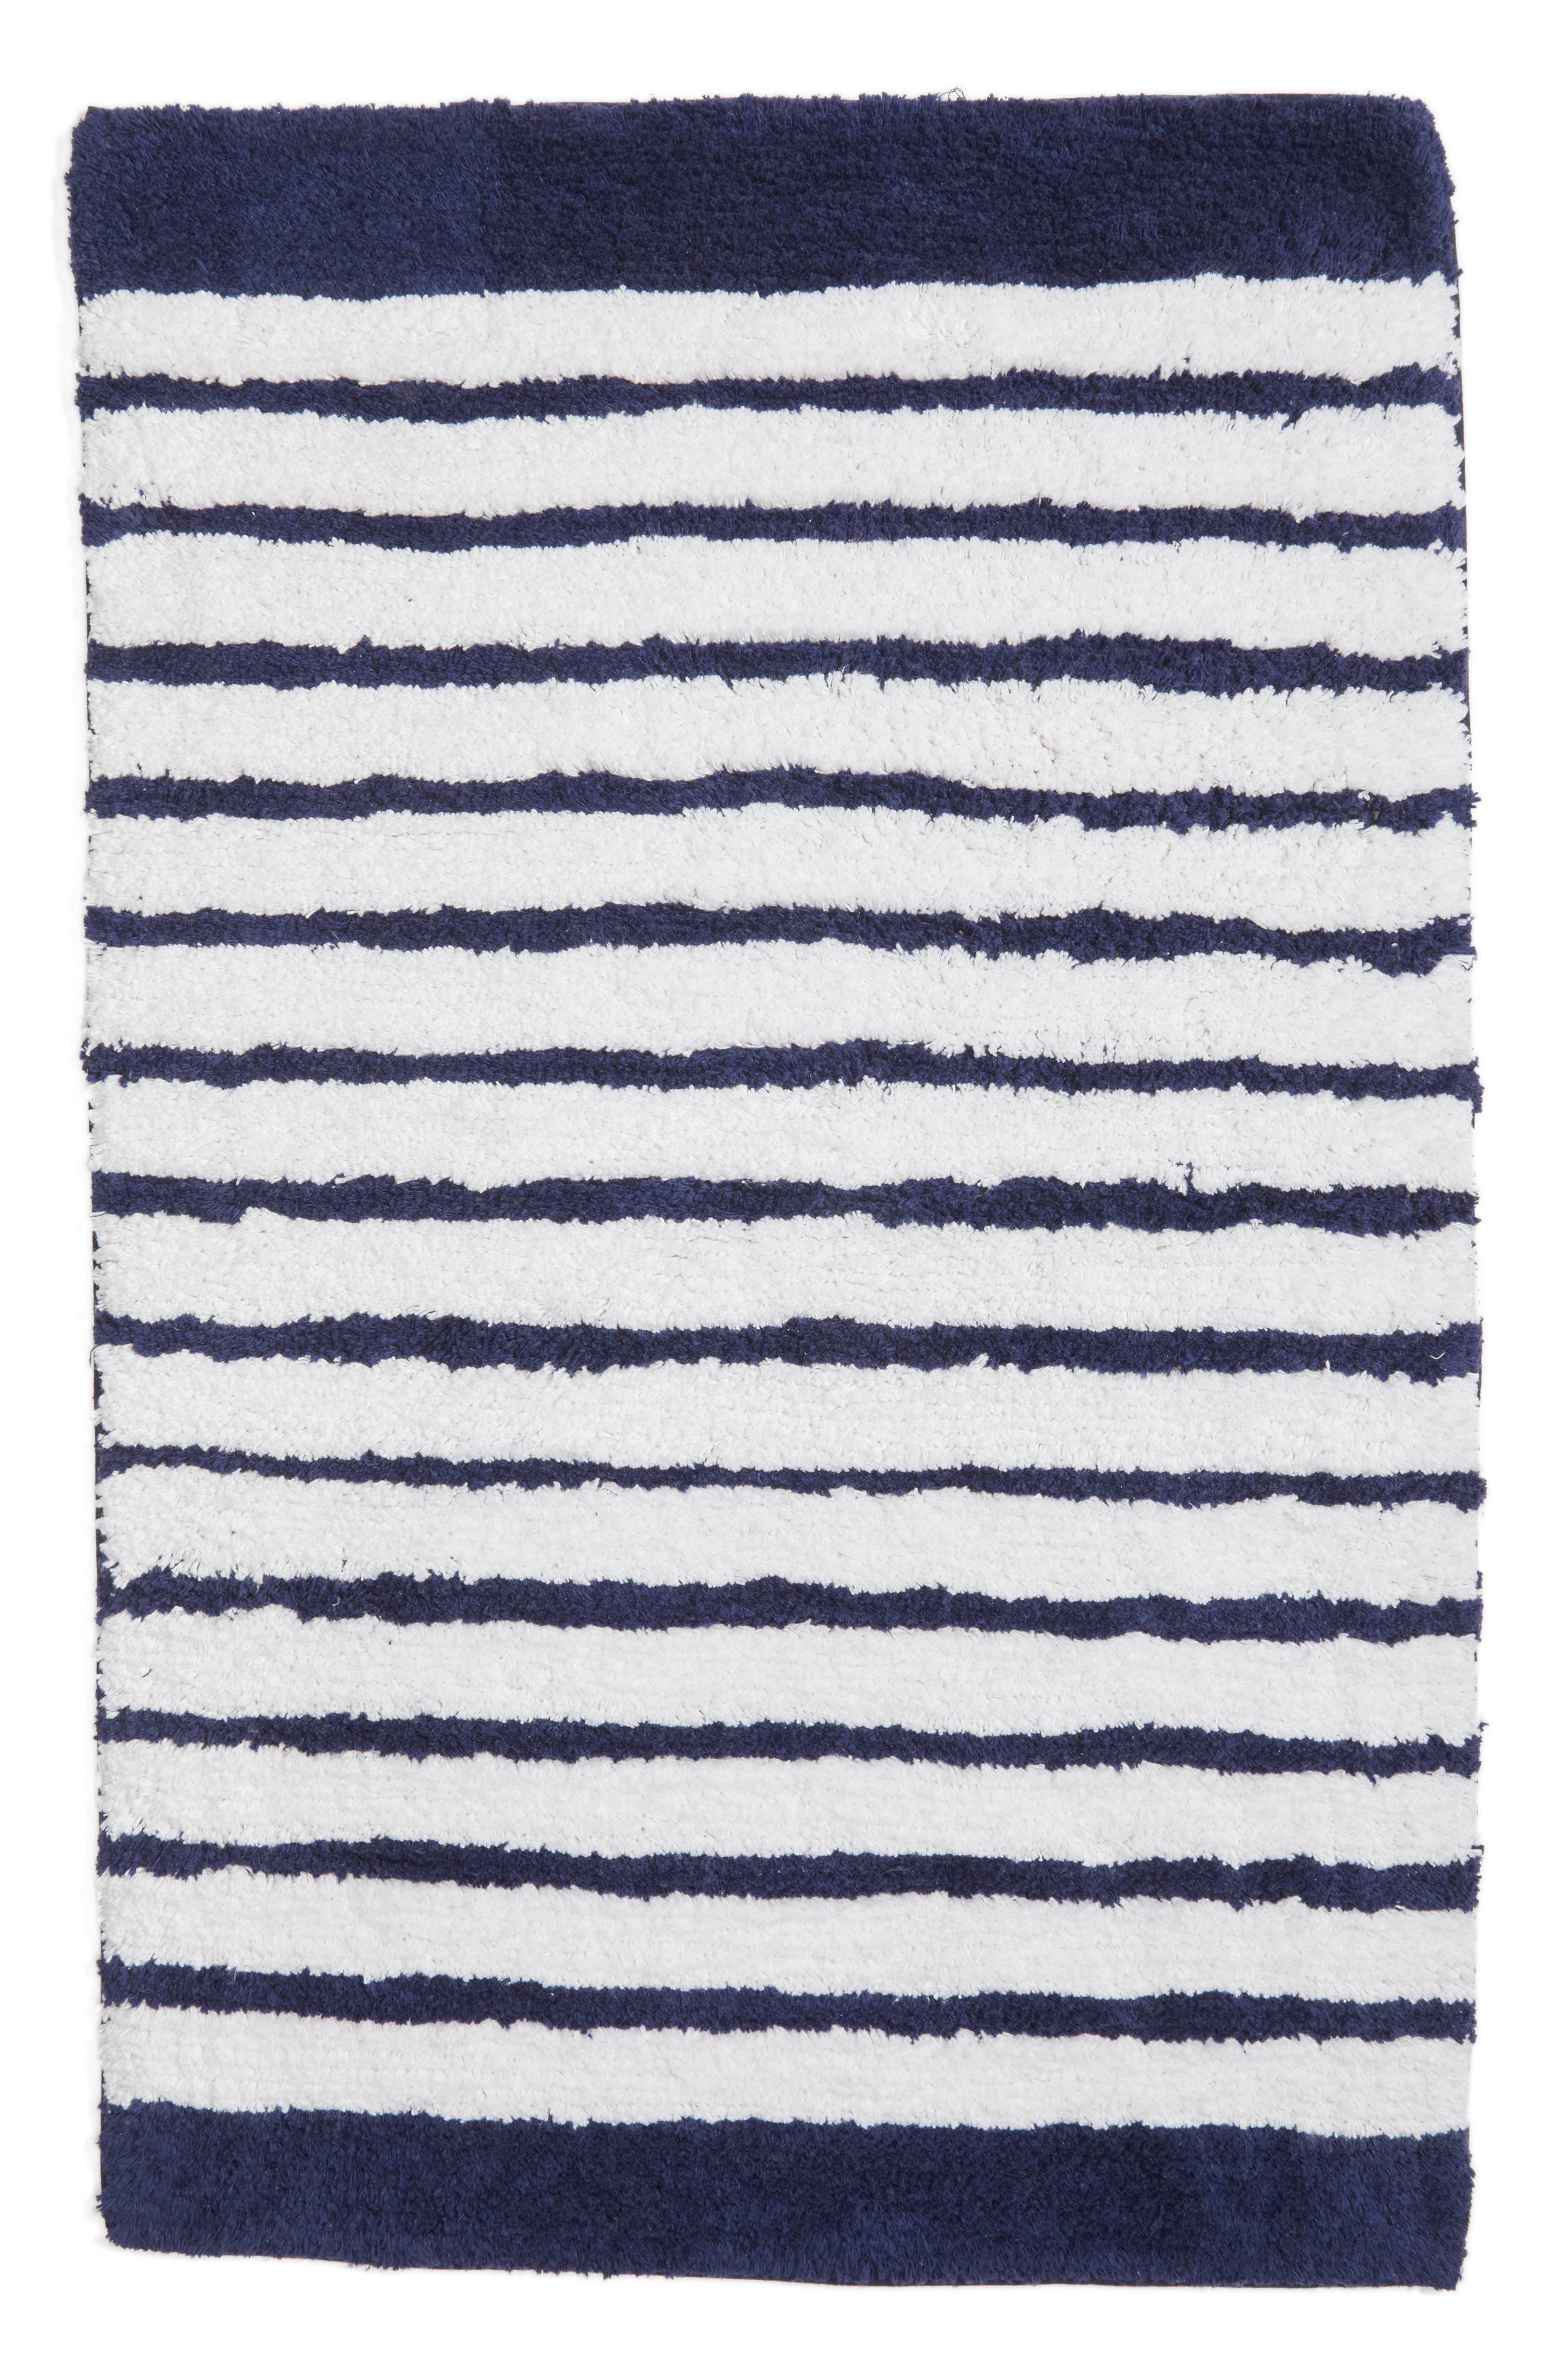 stripe bath rug,                             Main thumbnail 1, color,                             415